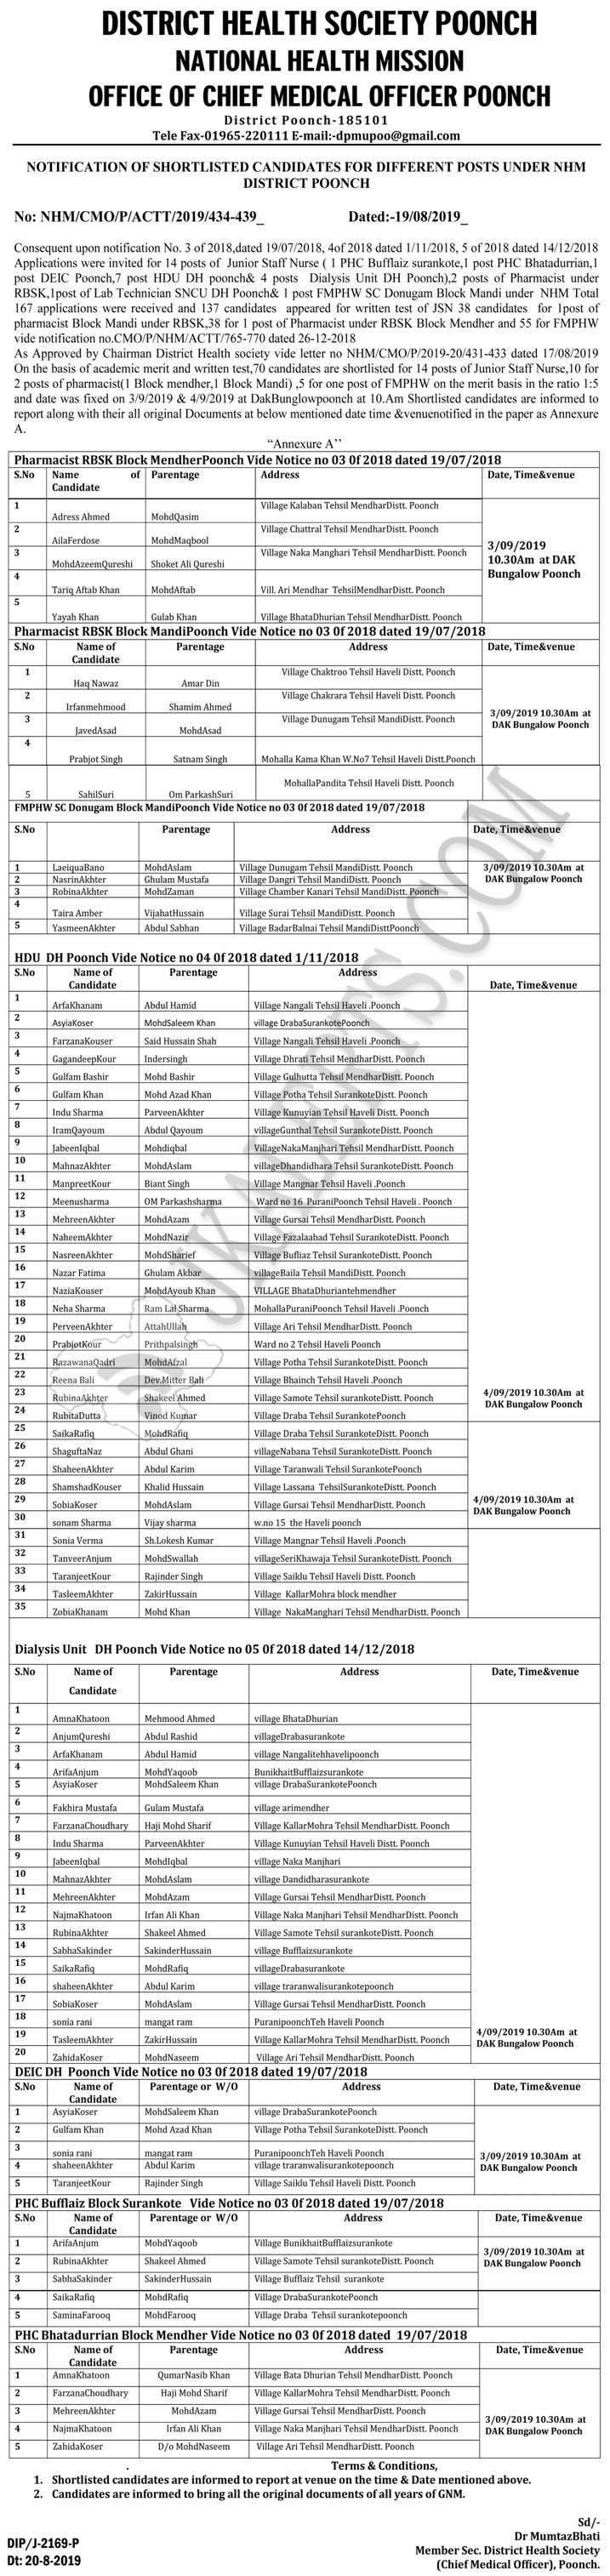 Shortlisted candidates for the various posts under NHM District Poonch.